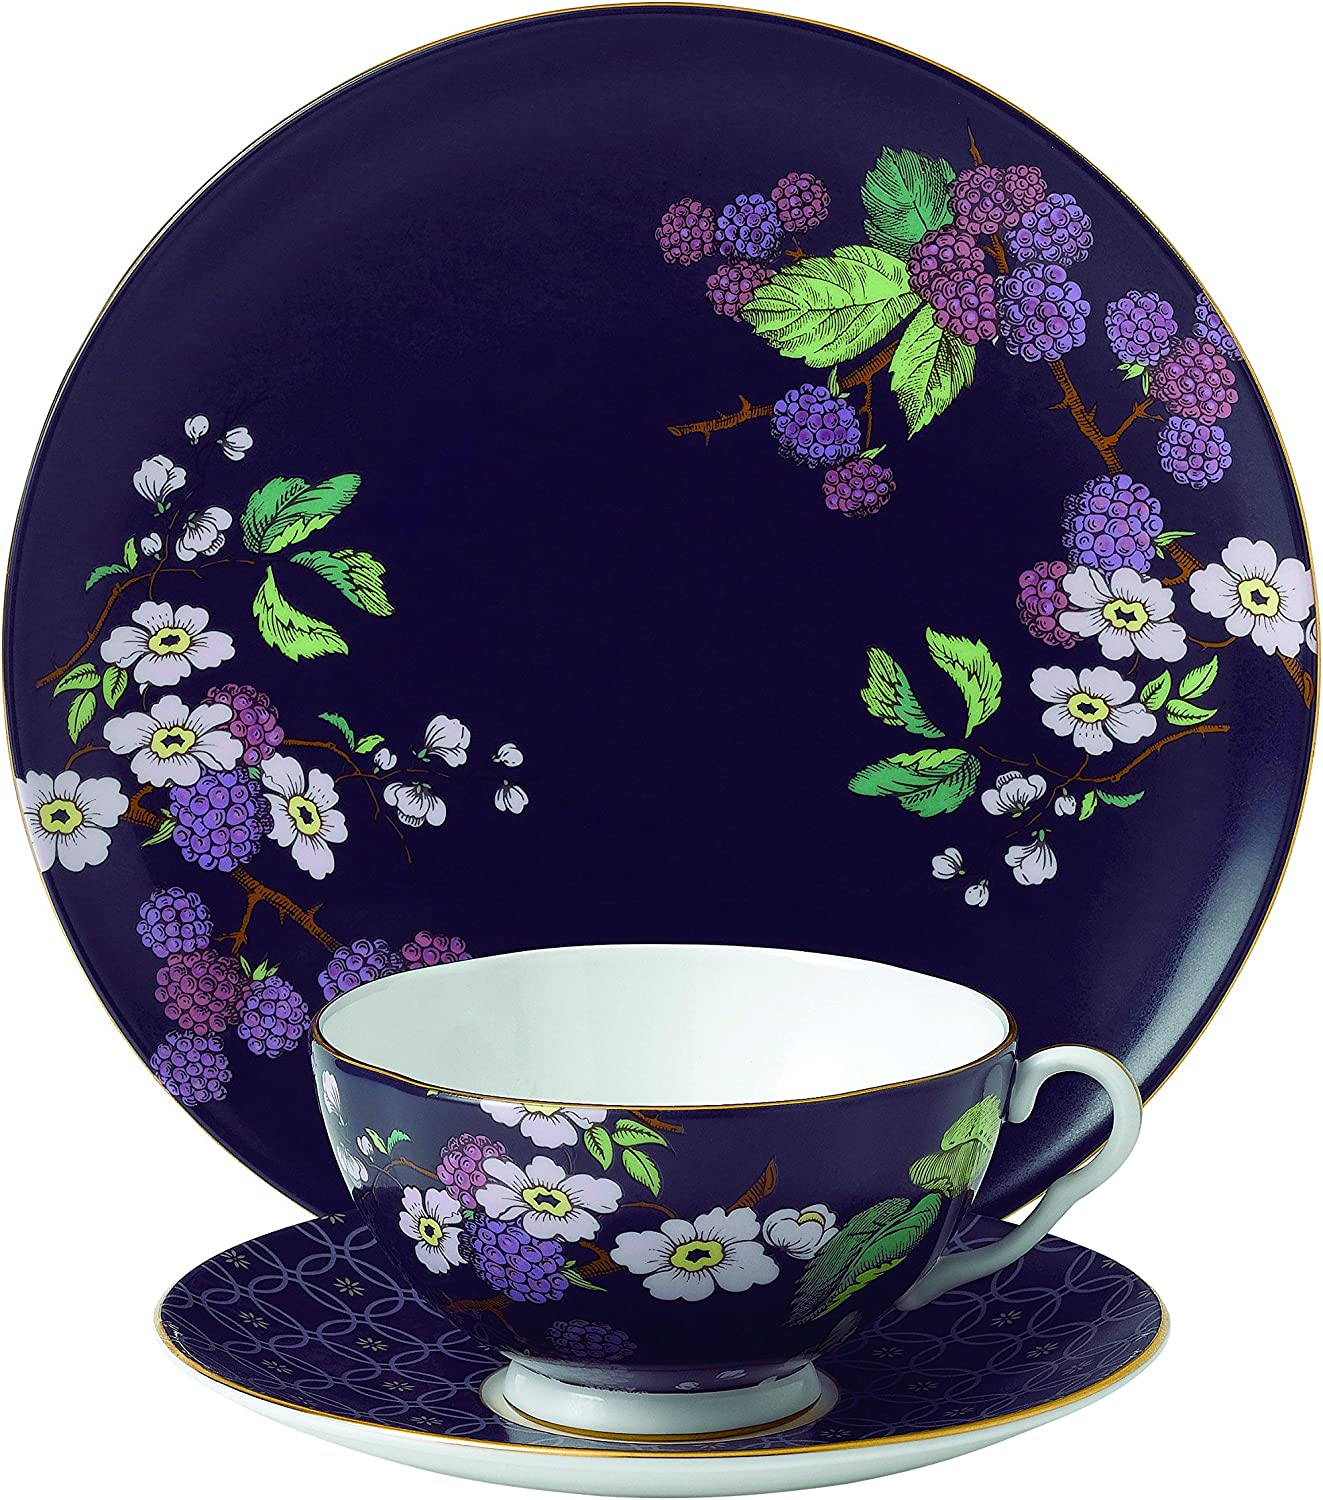 Wedgwood 3 Piece Garden Tea Plate Set, Blackberry